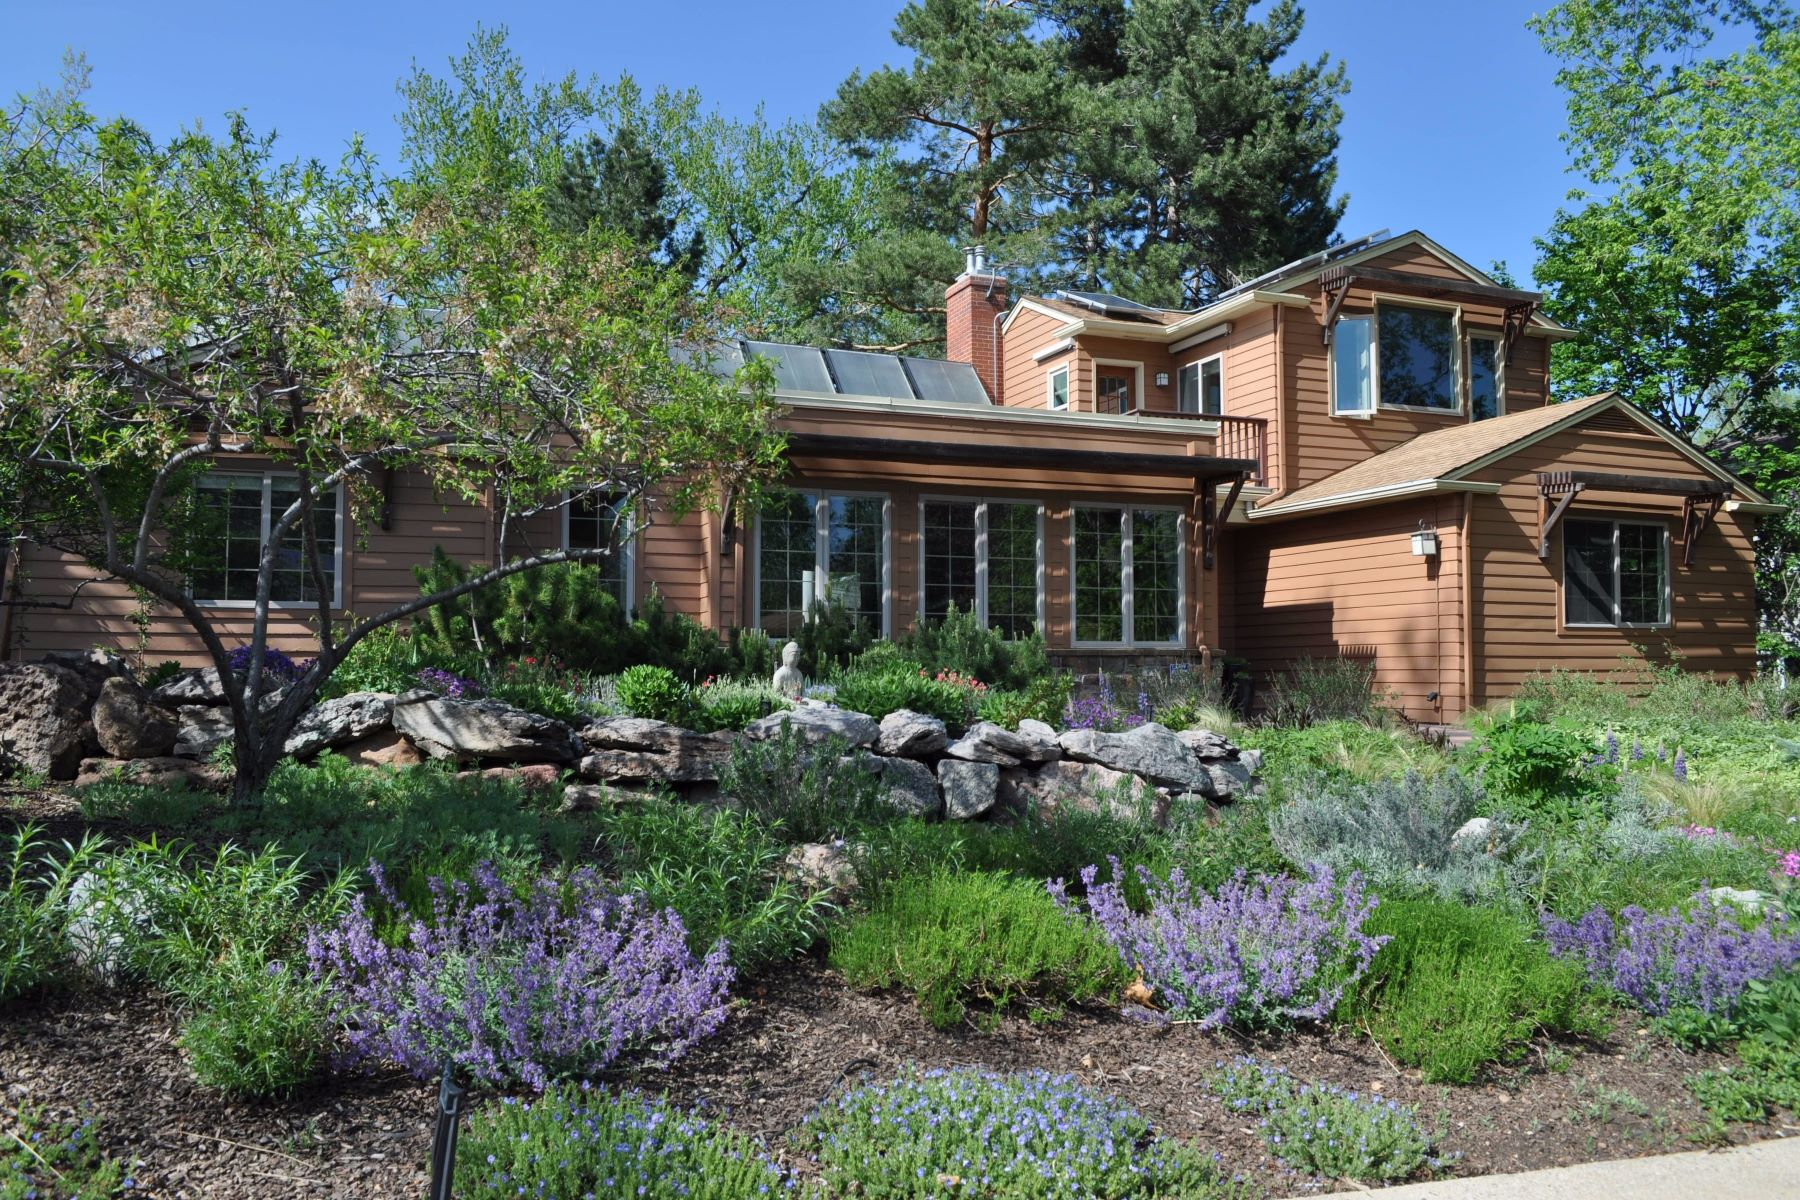 Single Family Home for Active at Lower Chautauqua Living 1985 Bluebell Ave Boulder, Colorado 80302 United States